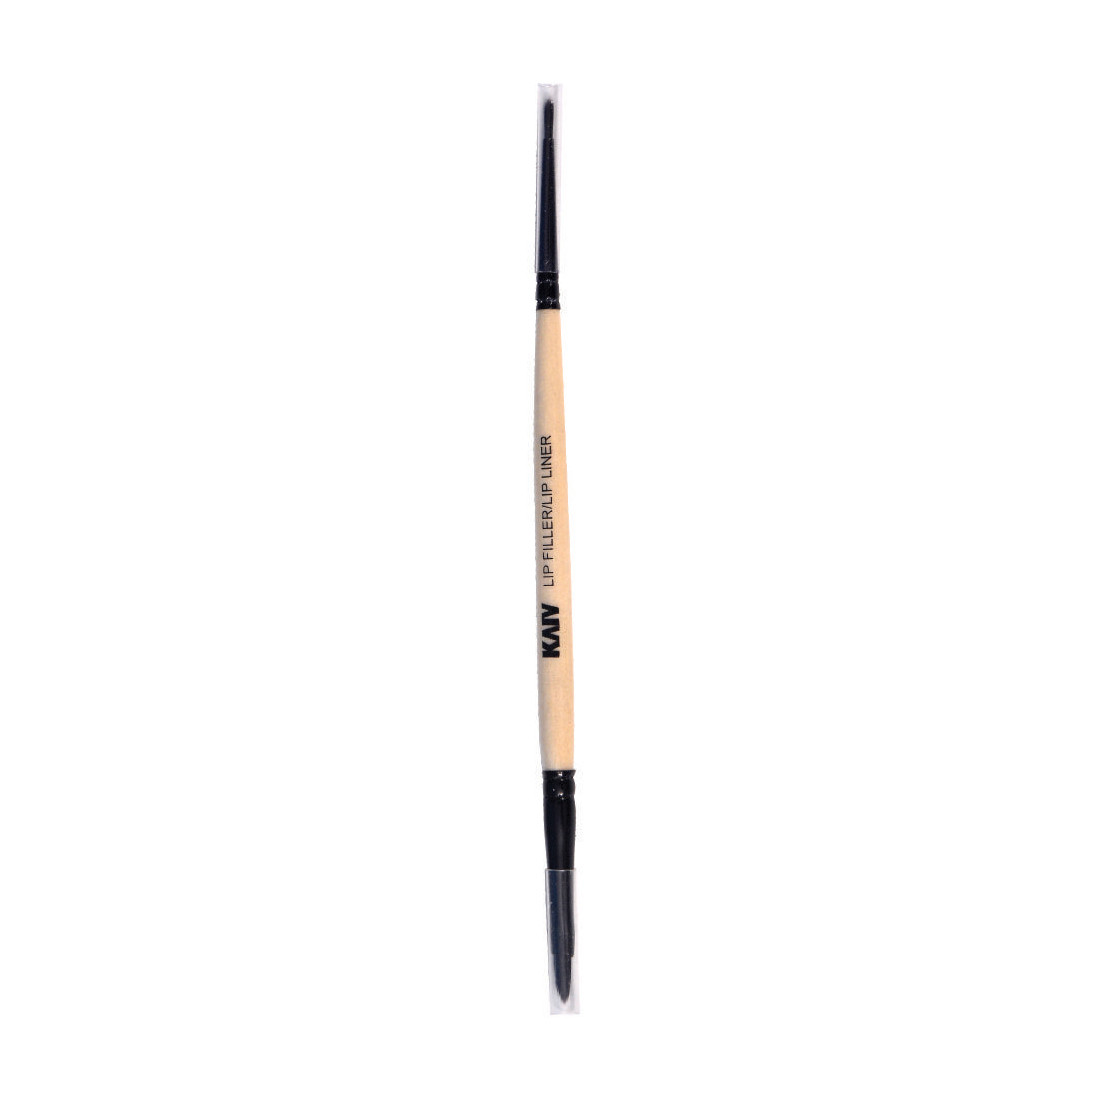 Kaiv Lip Filler - Lip Liner (Pack of 1)